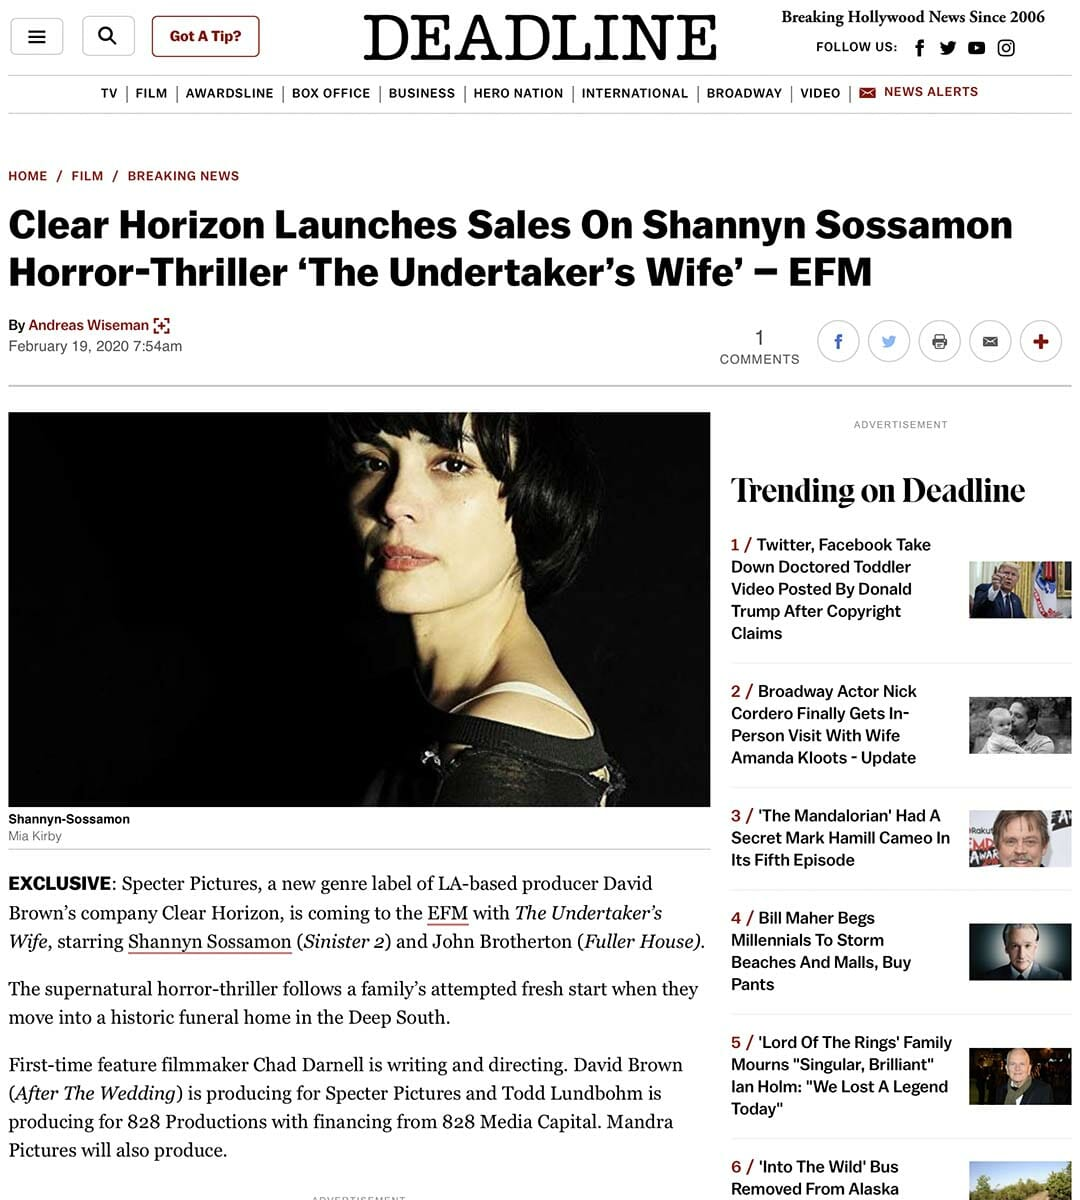 DEADLINE: Clear Horizon Launches Sales On Shannyn Sossamon Horror-Thriller 'The Undertaker's Wife' – EFM